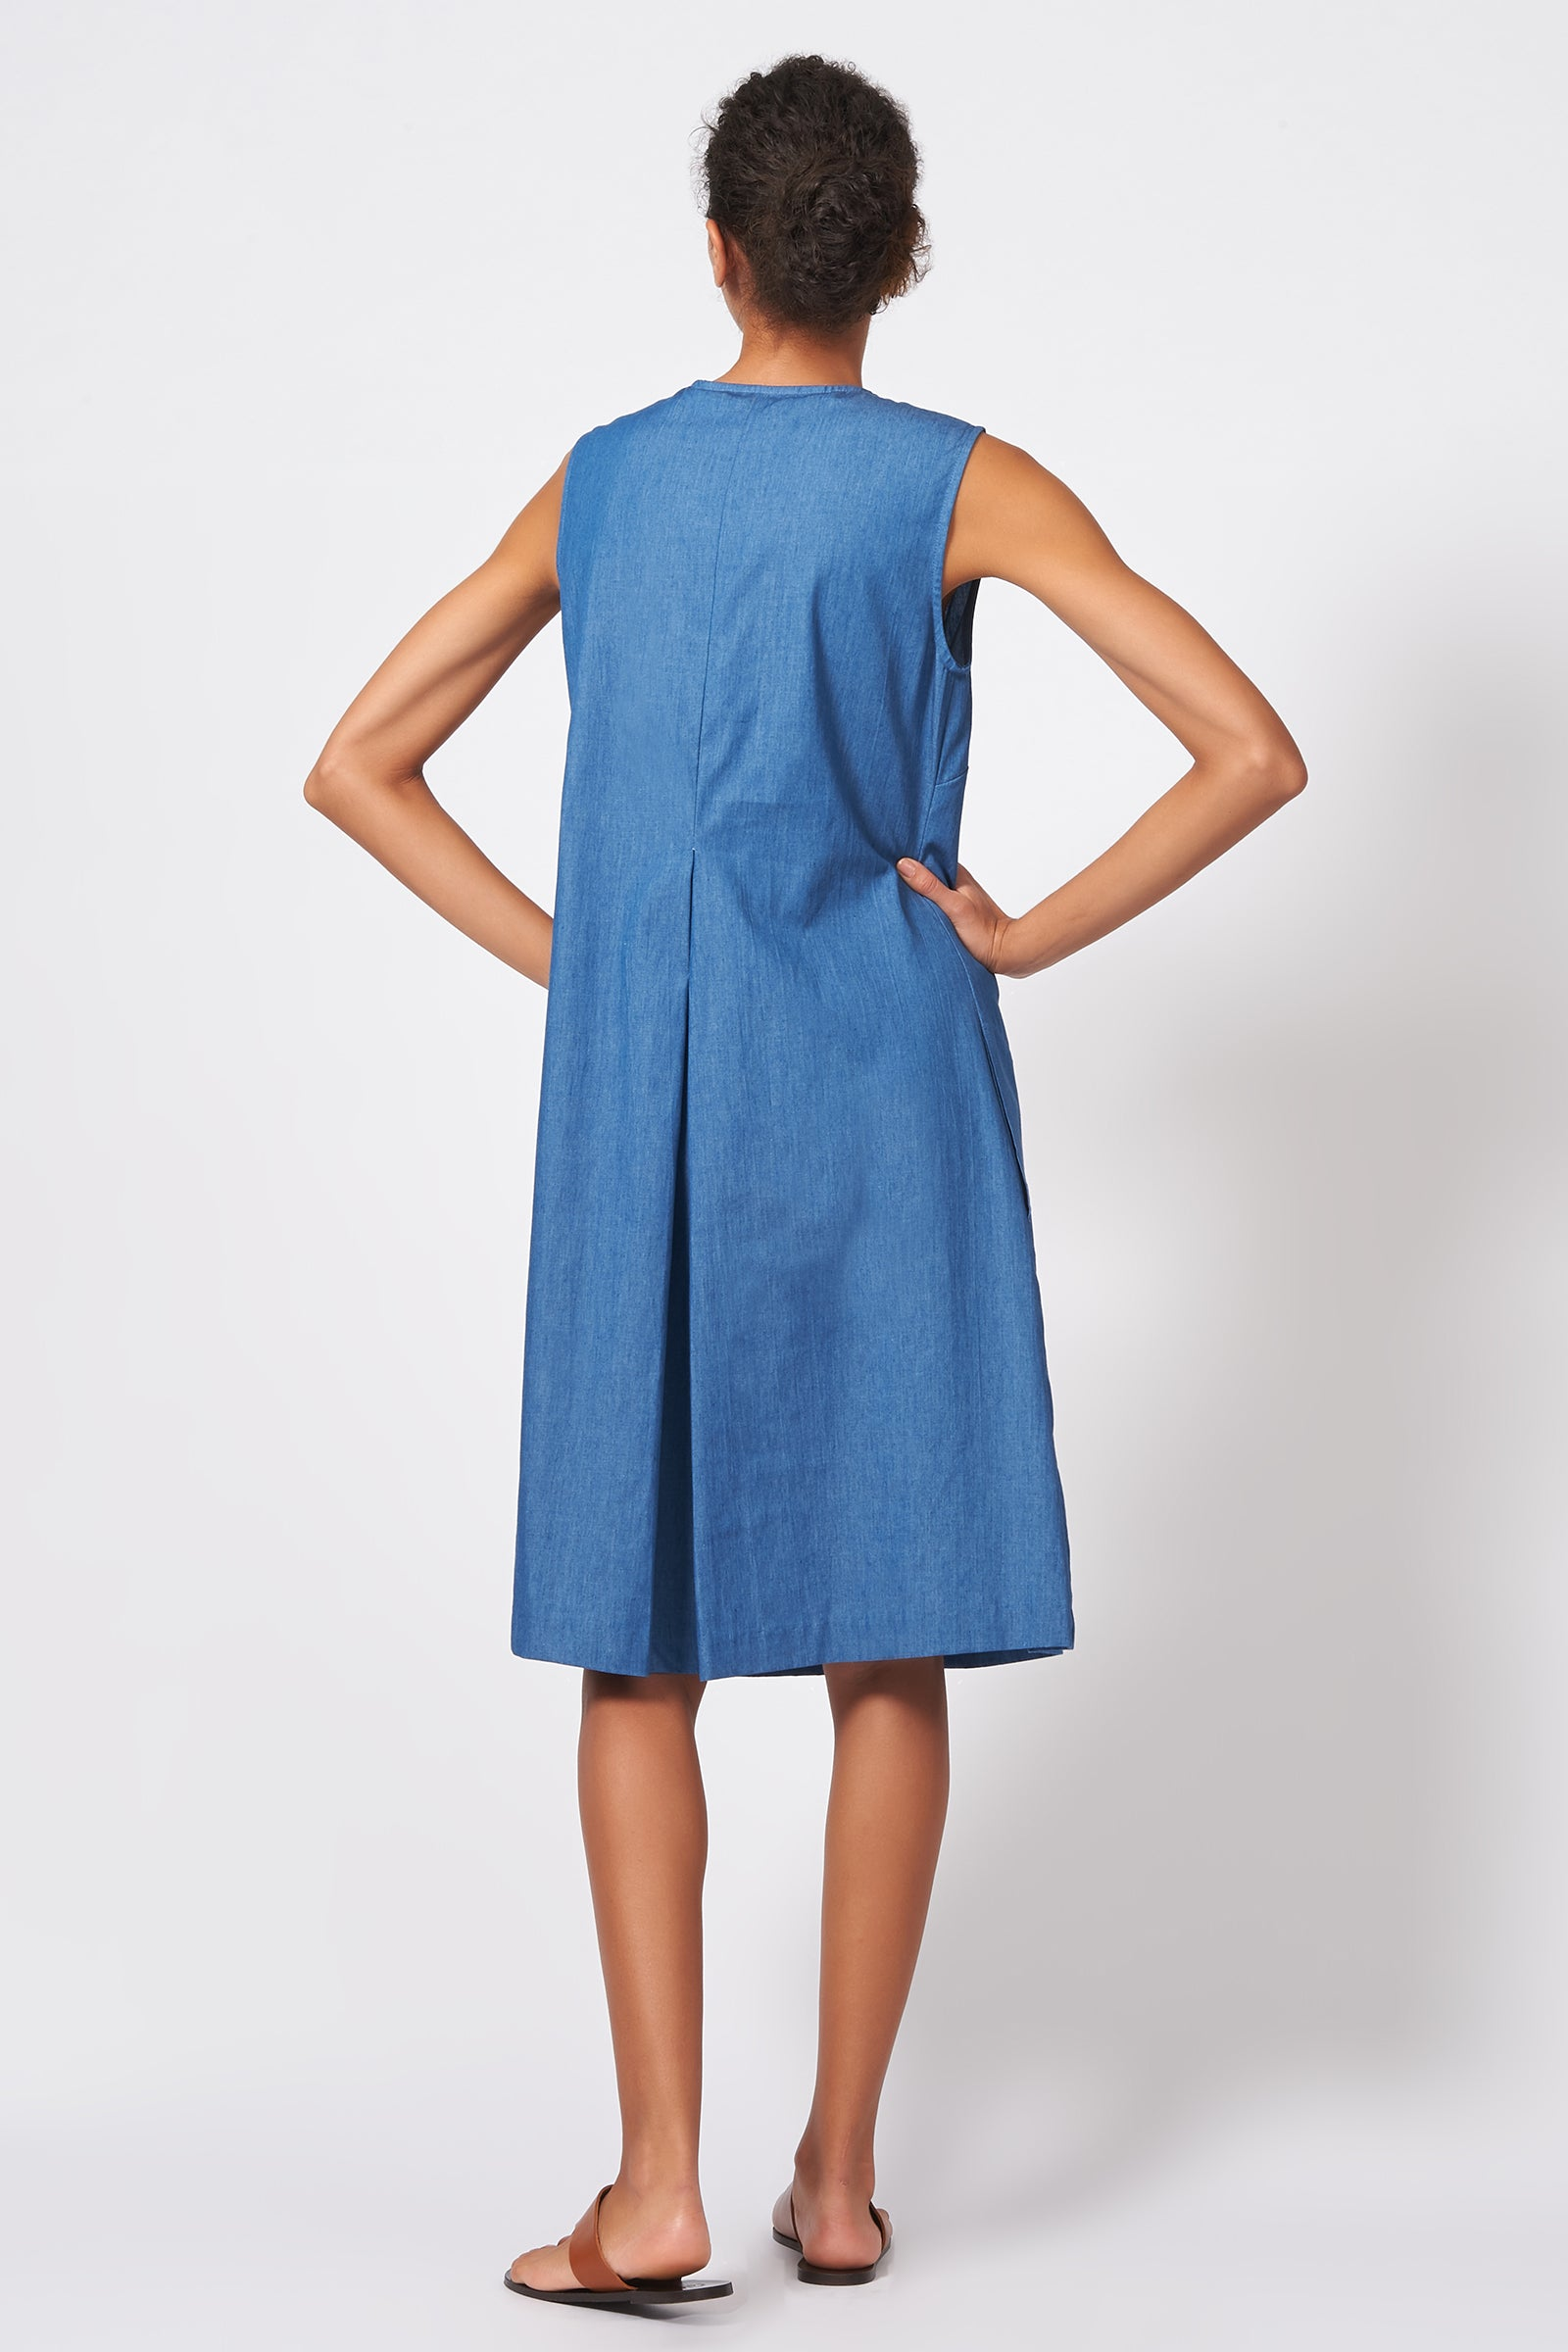 Kal Rieman Pleat Front Zip Dress in Light Indigo on Model Full Front View